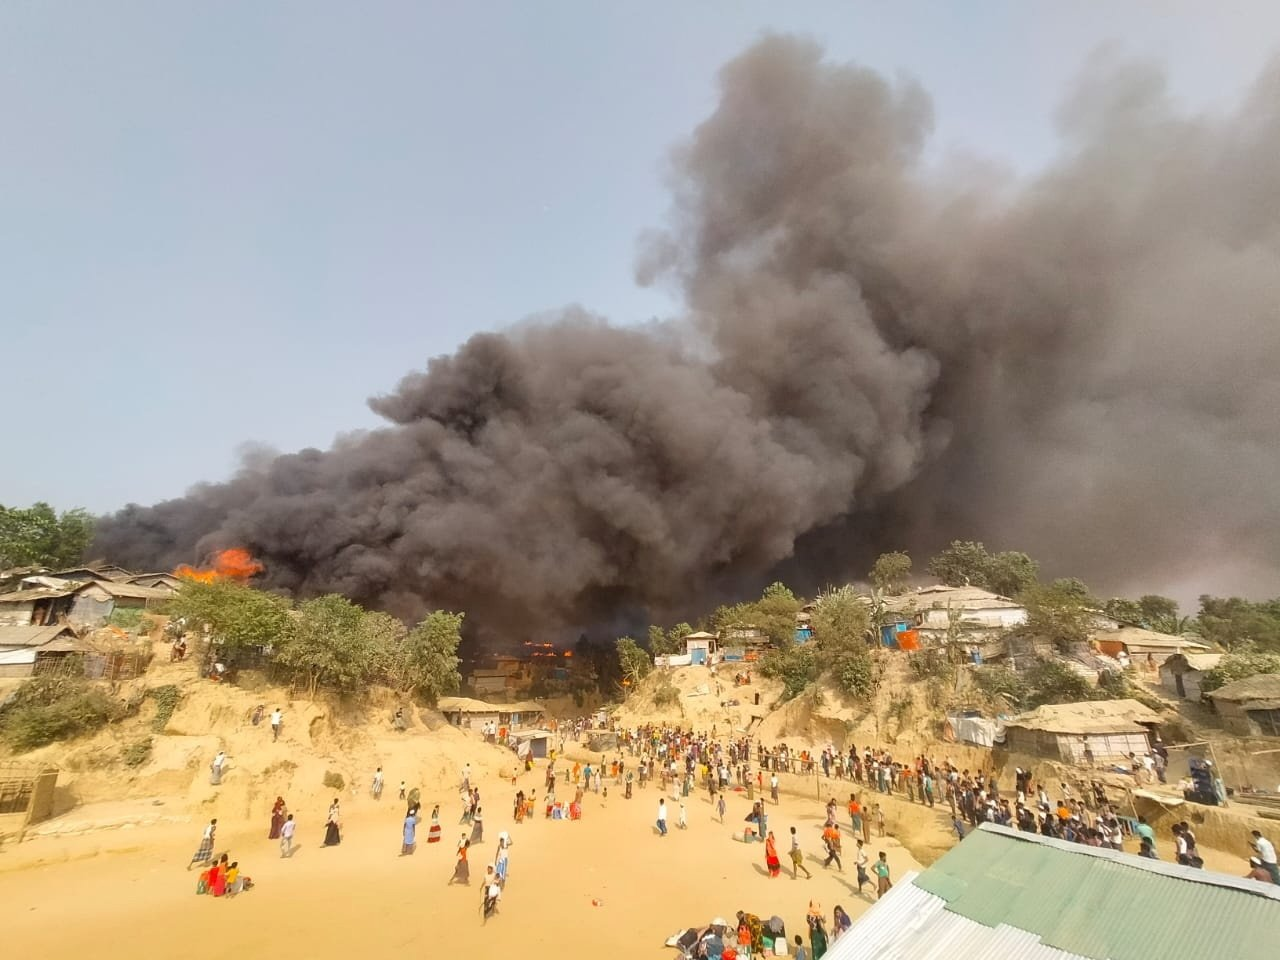 A fire is seen at a Balukhali refugee camp in Cox's Bazar, Bangladesh March 22, 2021 in this picture obtained from social media. (Rohingya Right Team/Md Arakani/via Reuters)